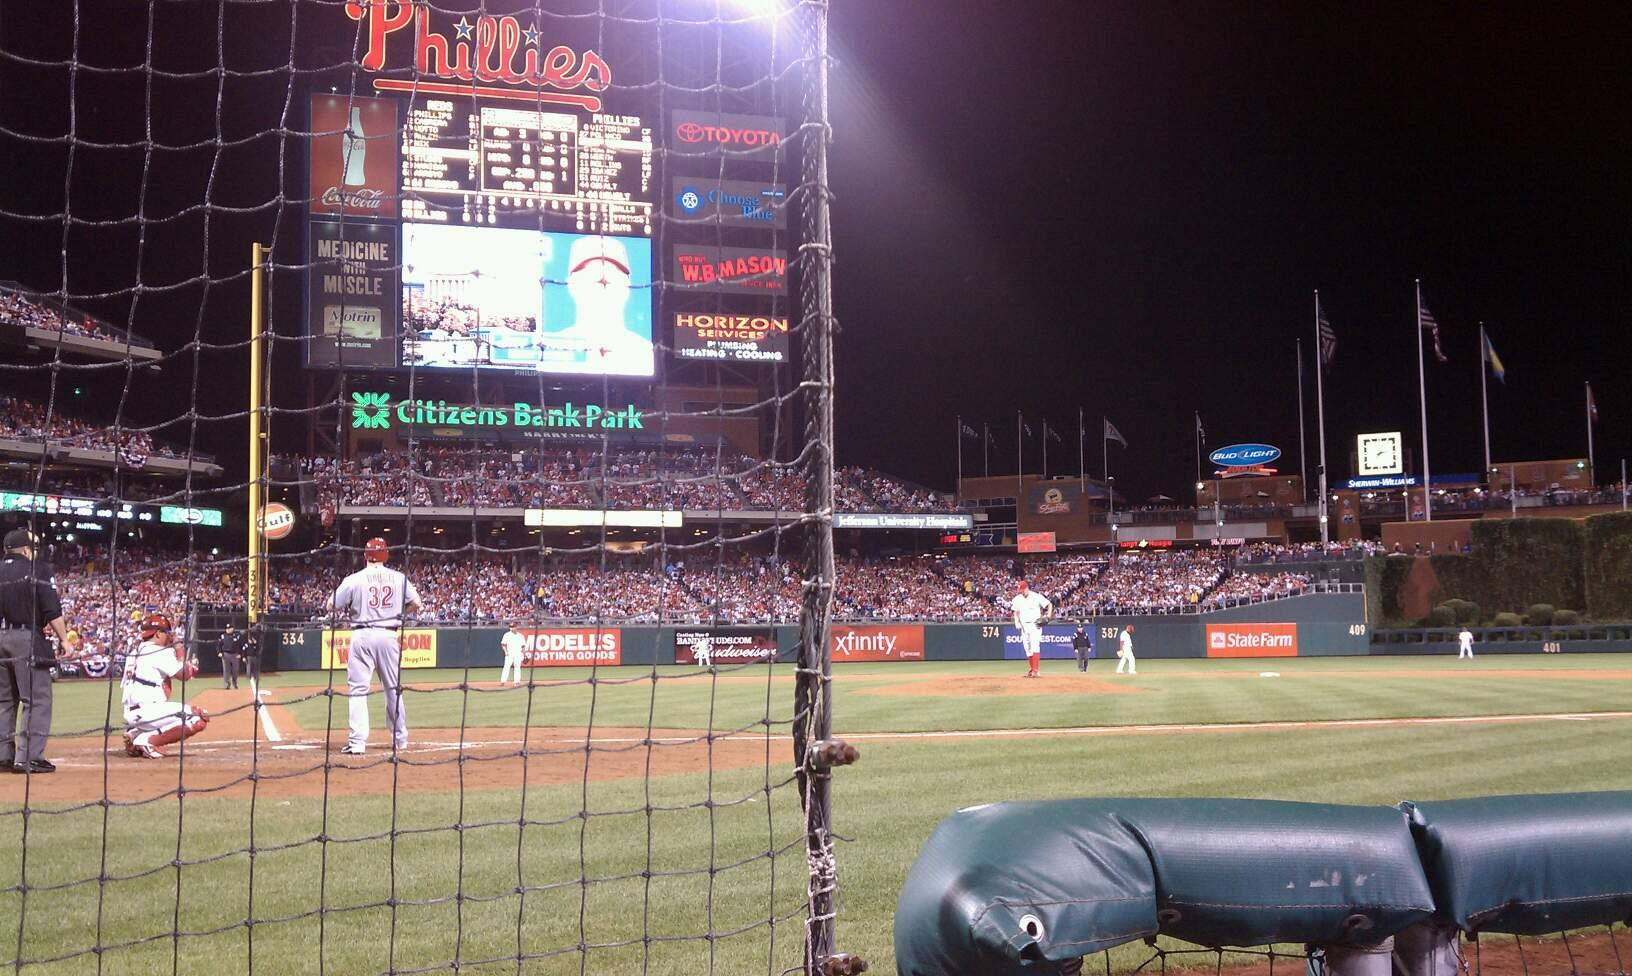 Citizens Bank Park Section F Row 1a Seat 12